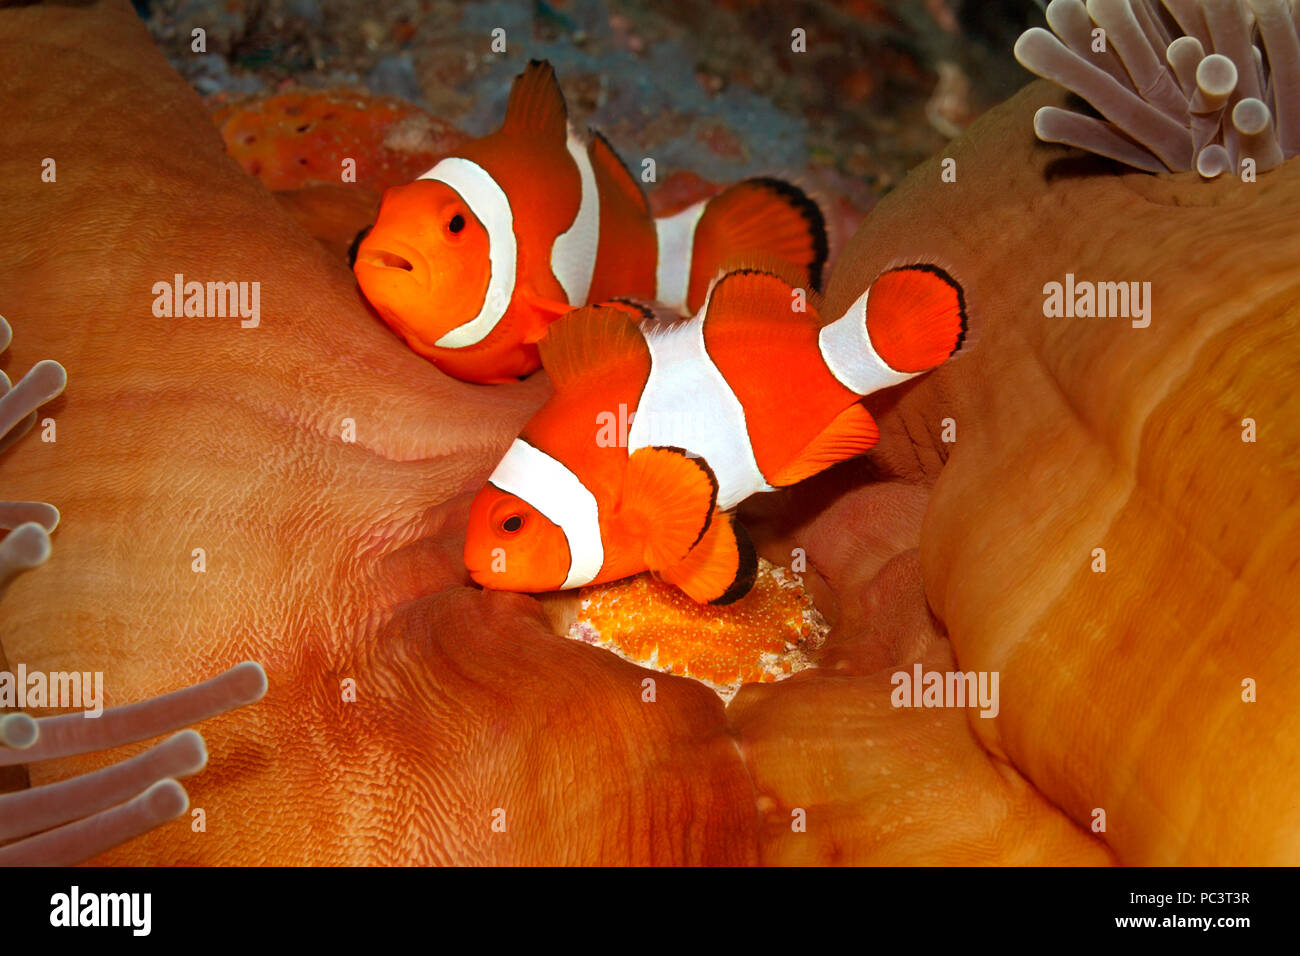 pair-of-clown-anemonefish-amphiprion-per